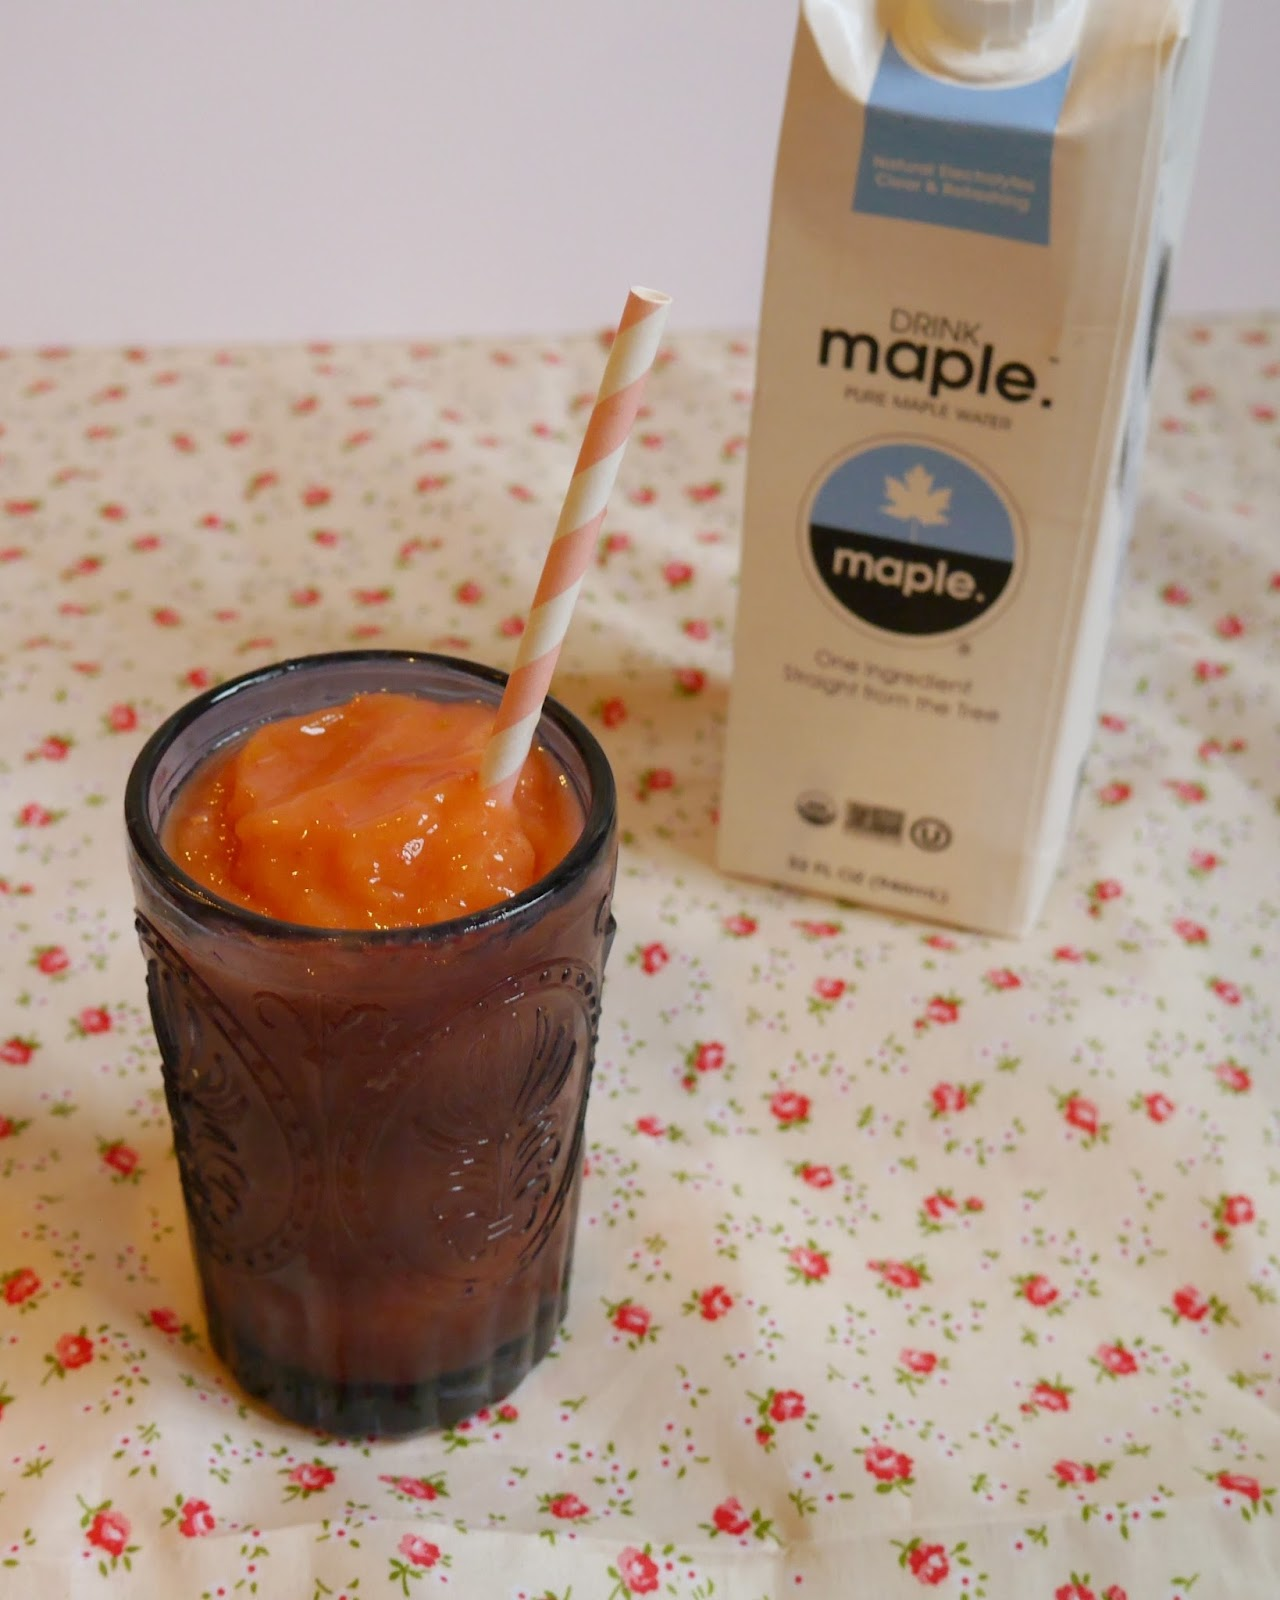 DRINKmaple maple water